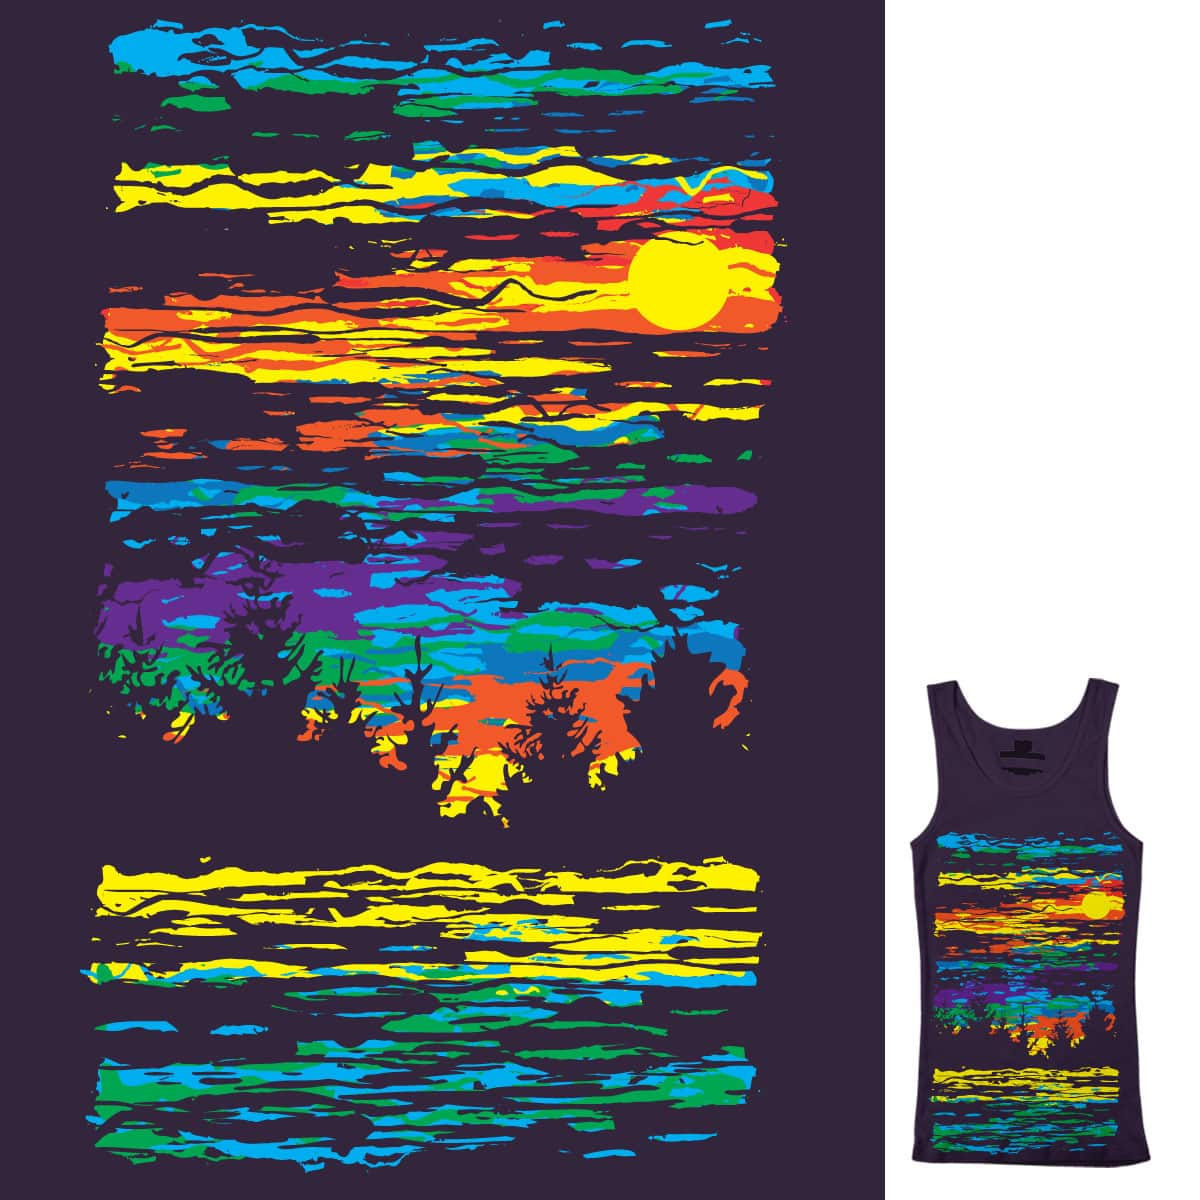 Abstract Sky by daletheskater on Threadless